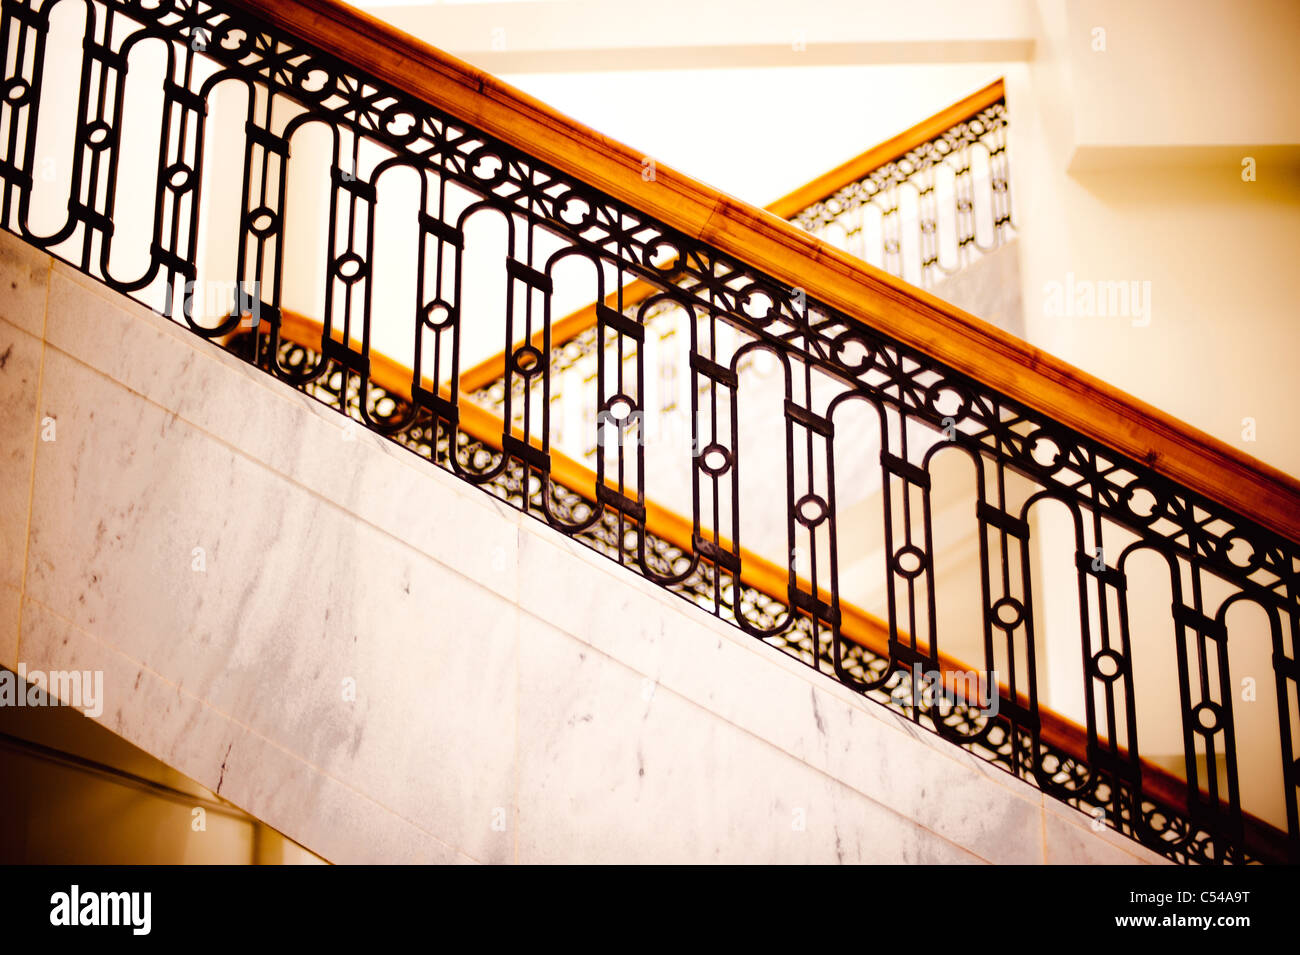 Courthouse Stairs - Stock Image